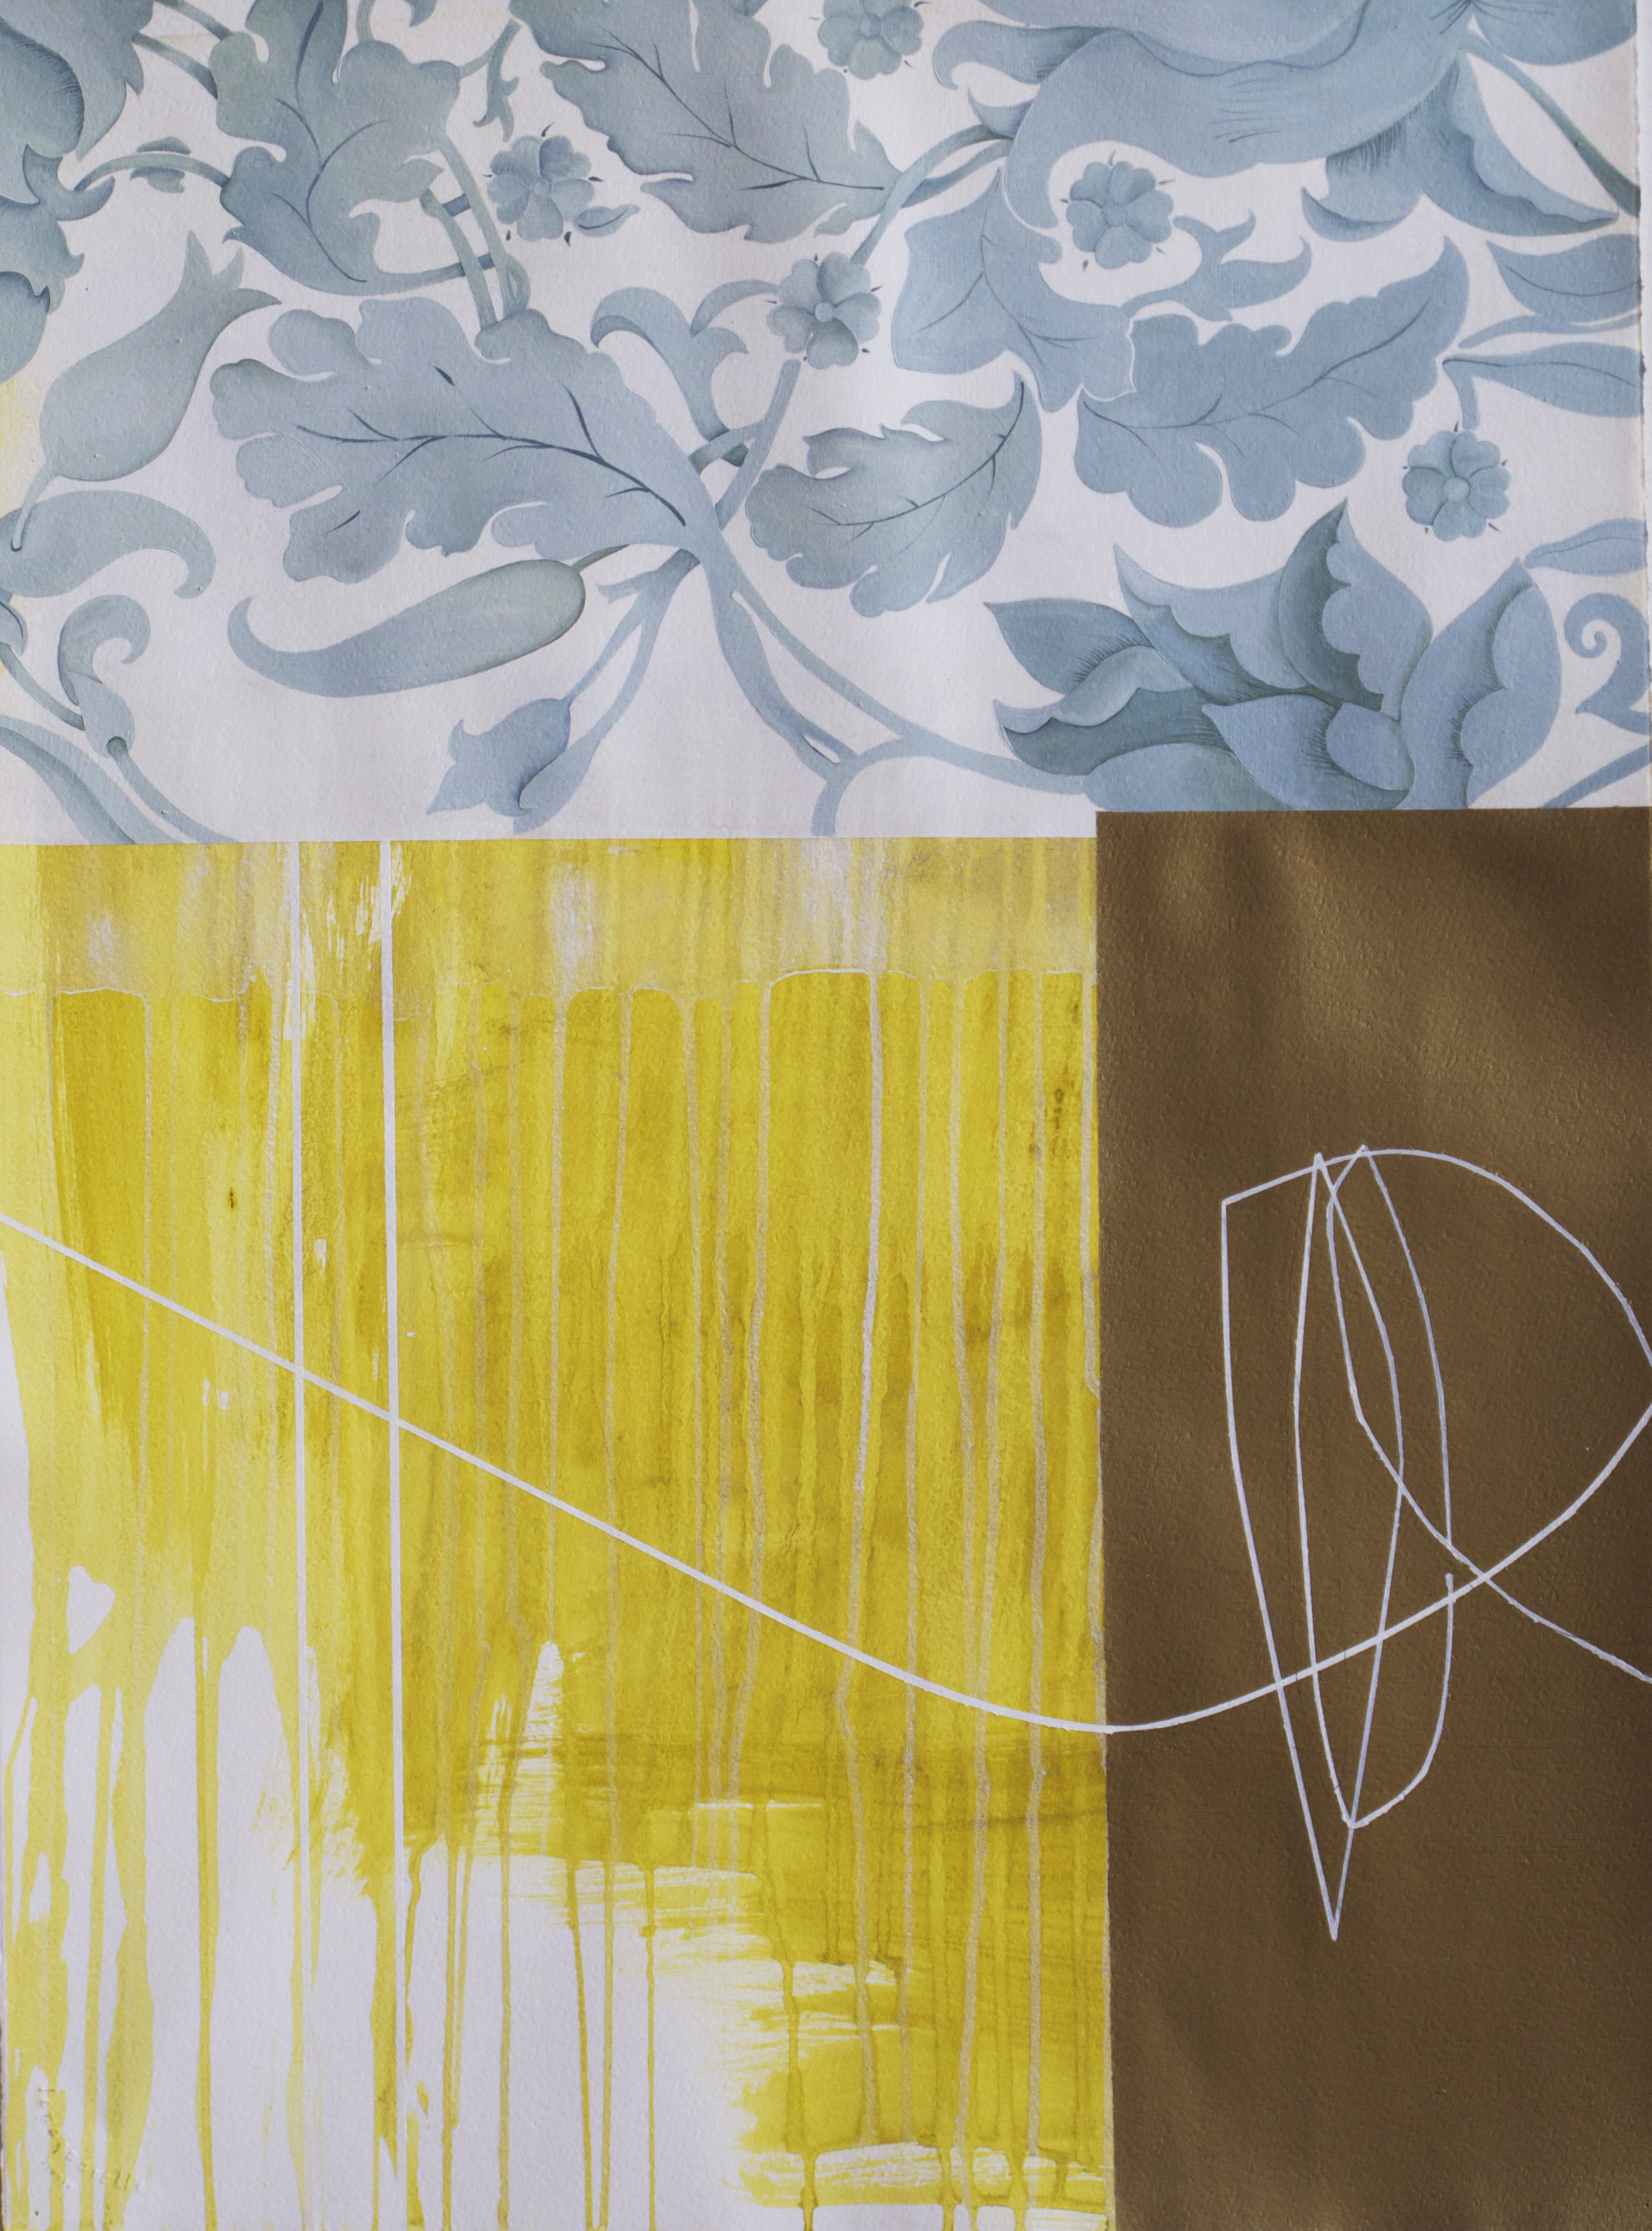 Kiki Gaffney    Gold Facade   acrylic and oil on paper, 30 x 22.5 in.